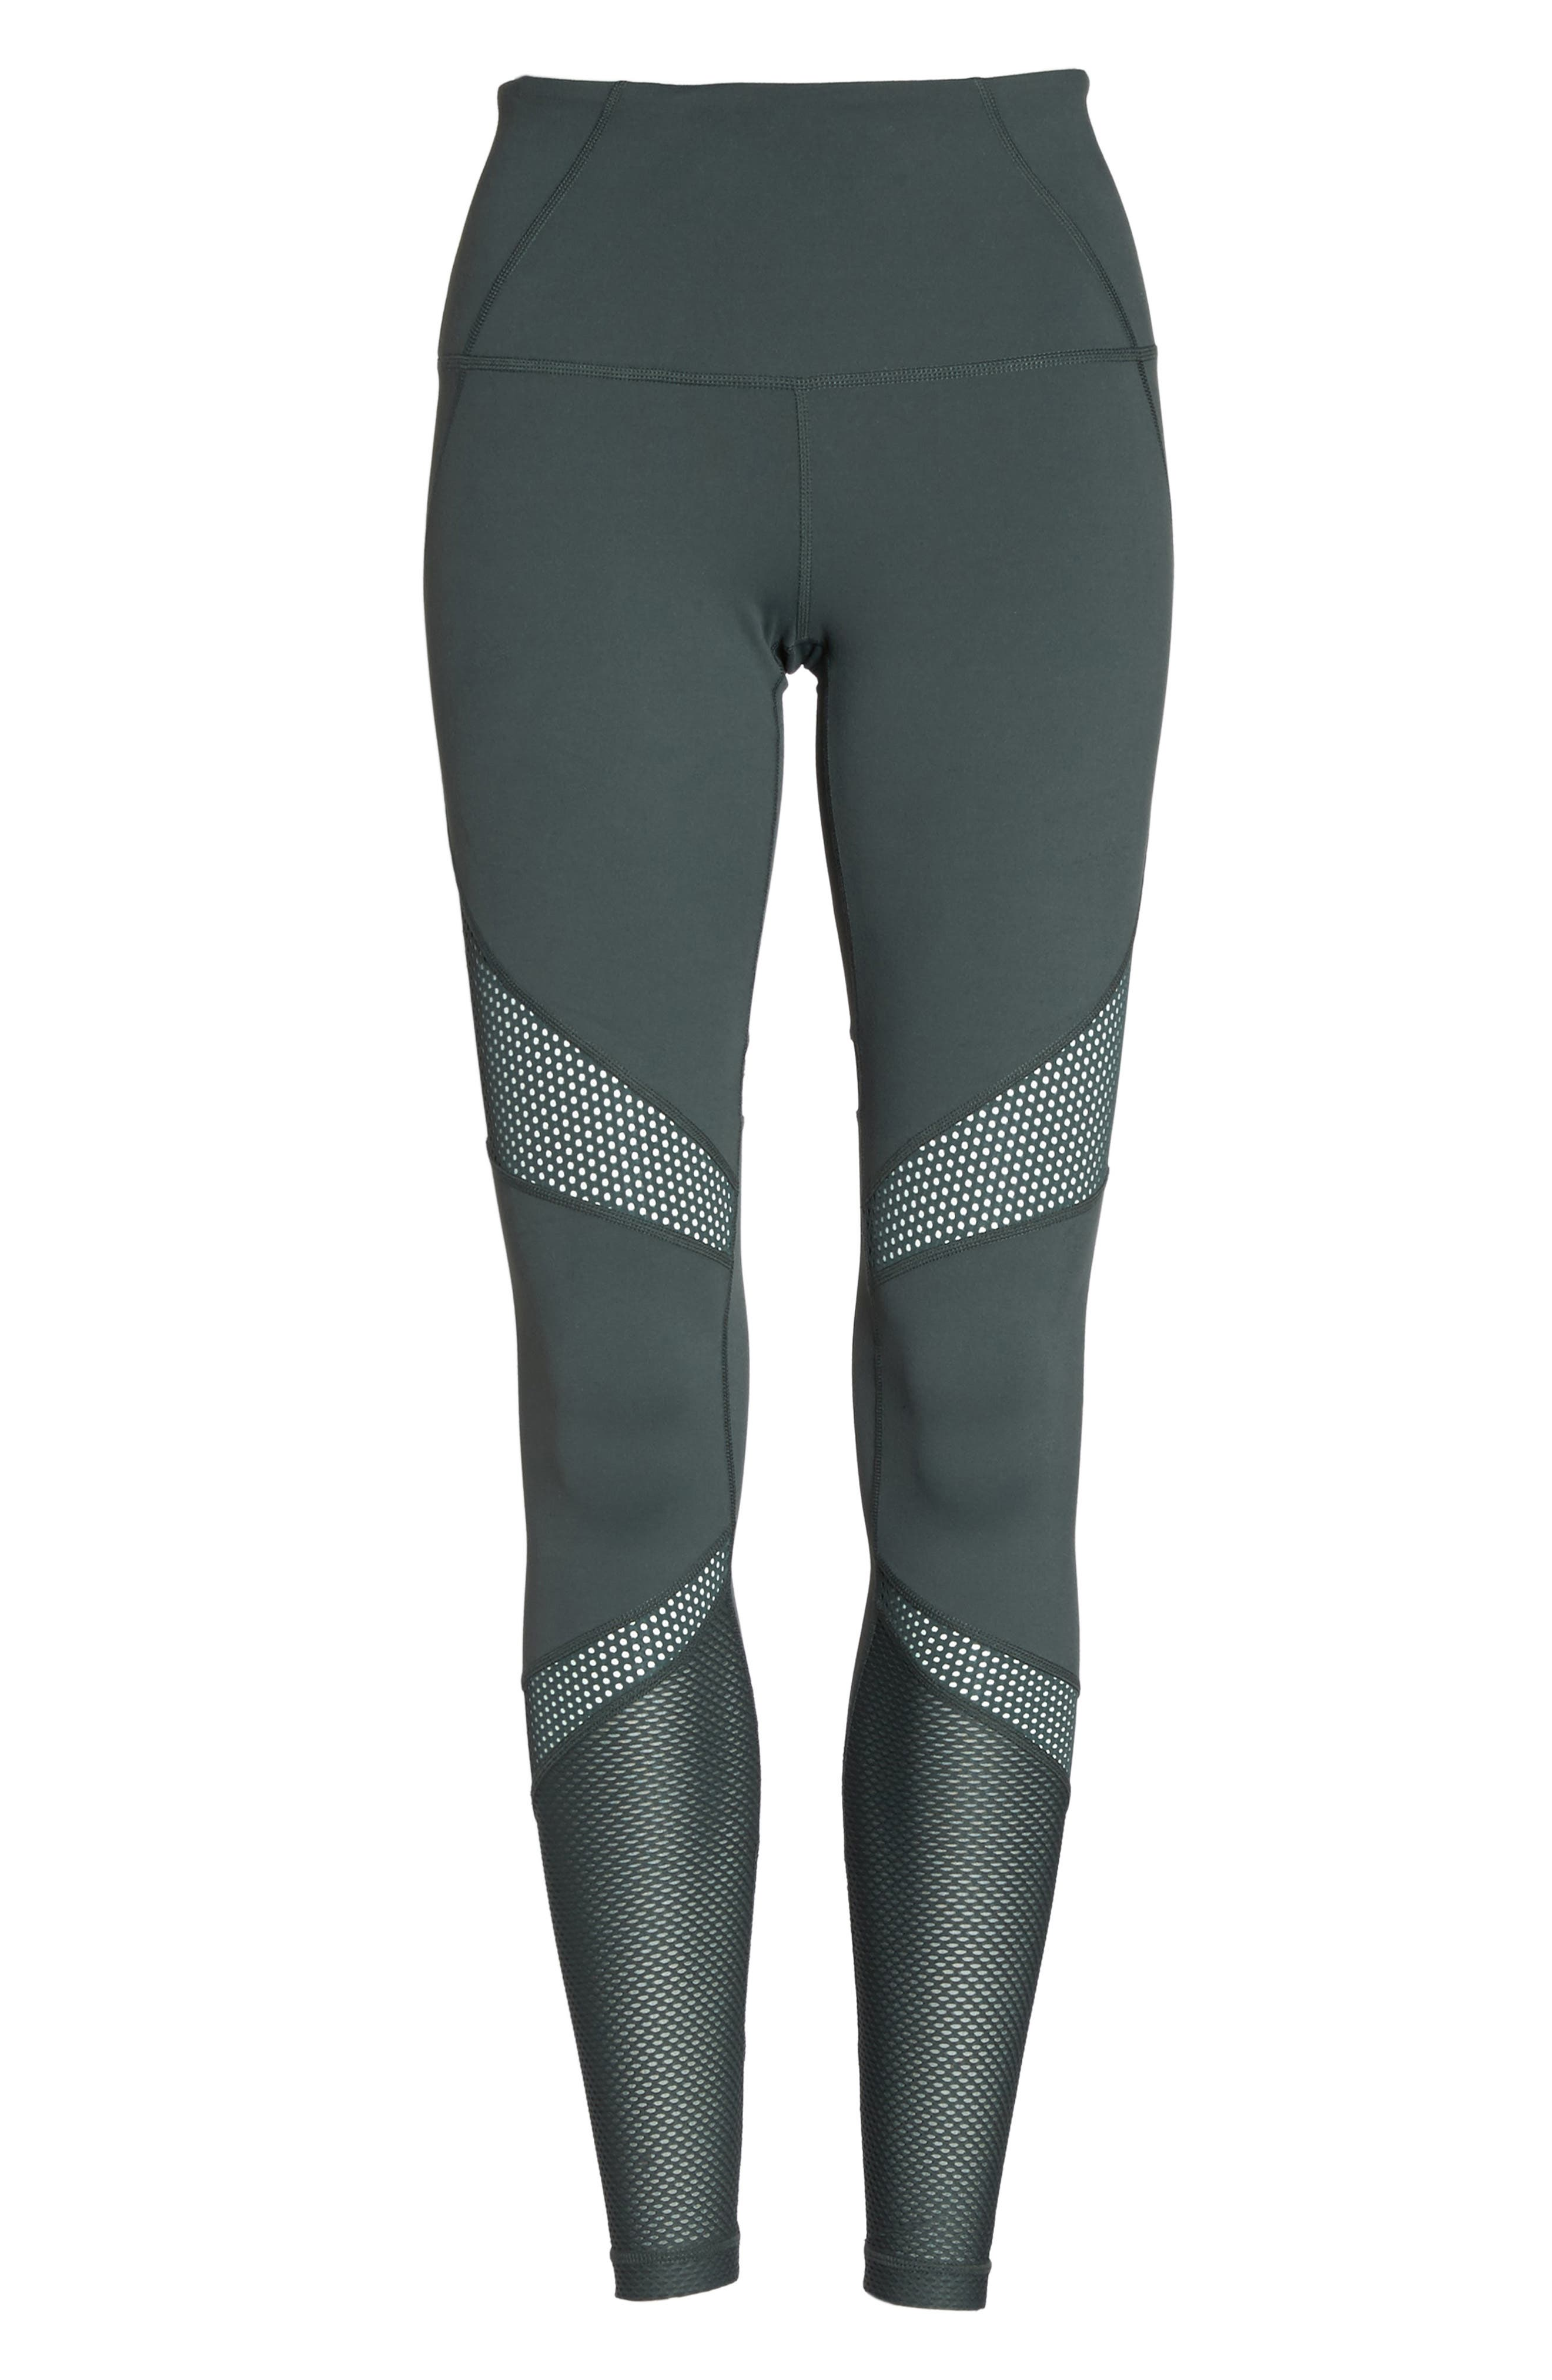 Out of Bounds High Waist Leggings,                             Alternate thumbnail 7, color,                             Grey Urban